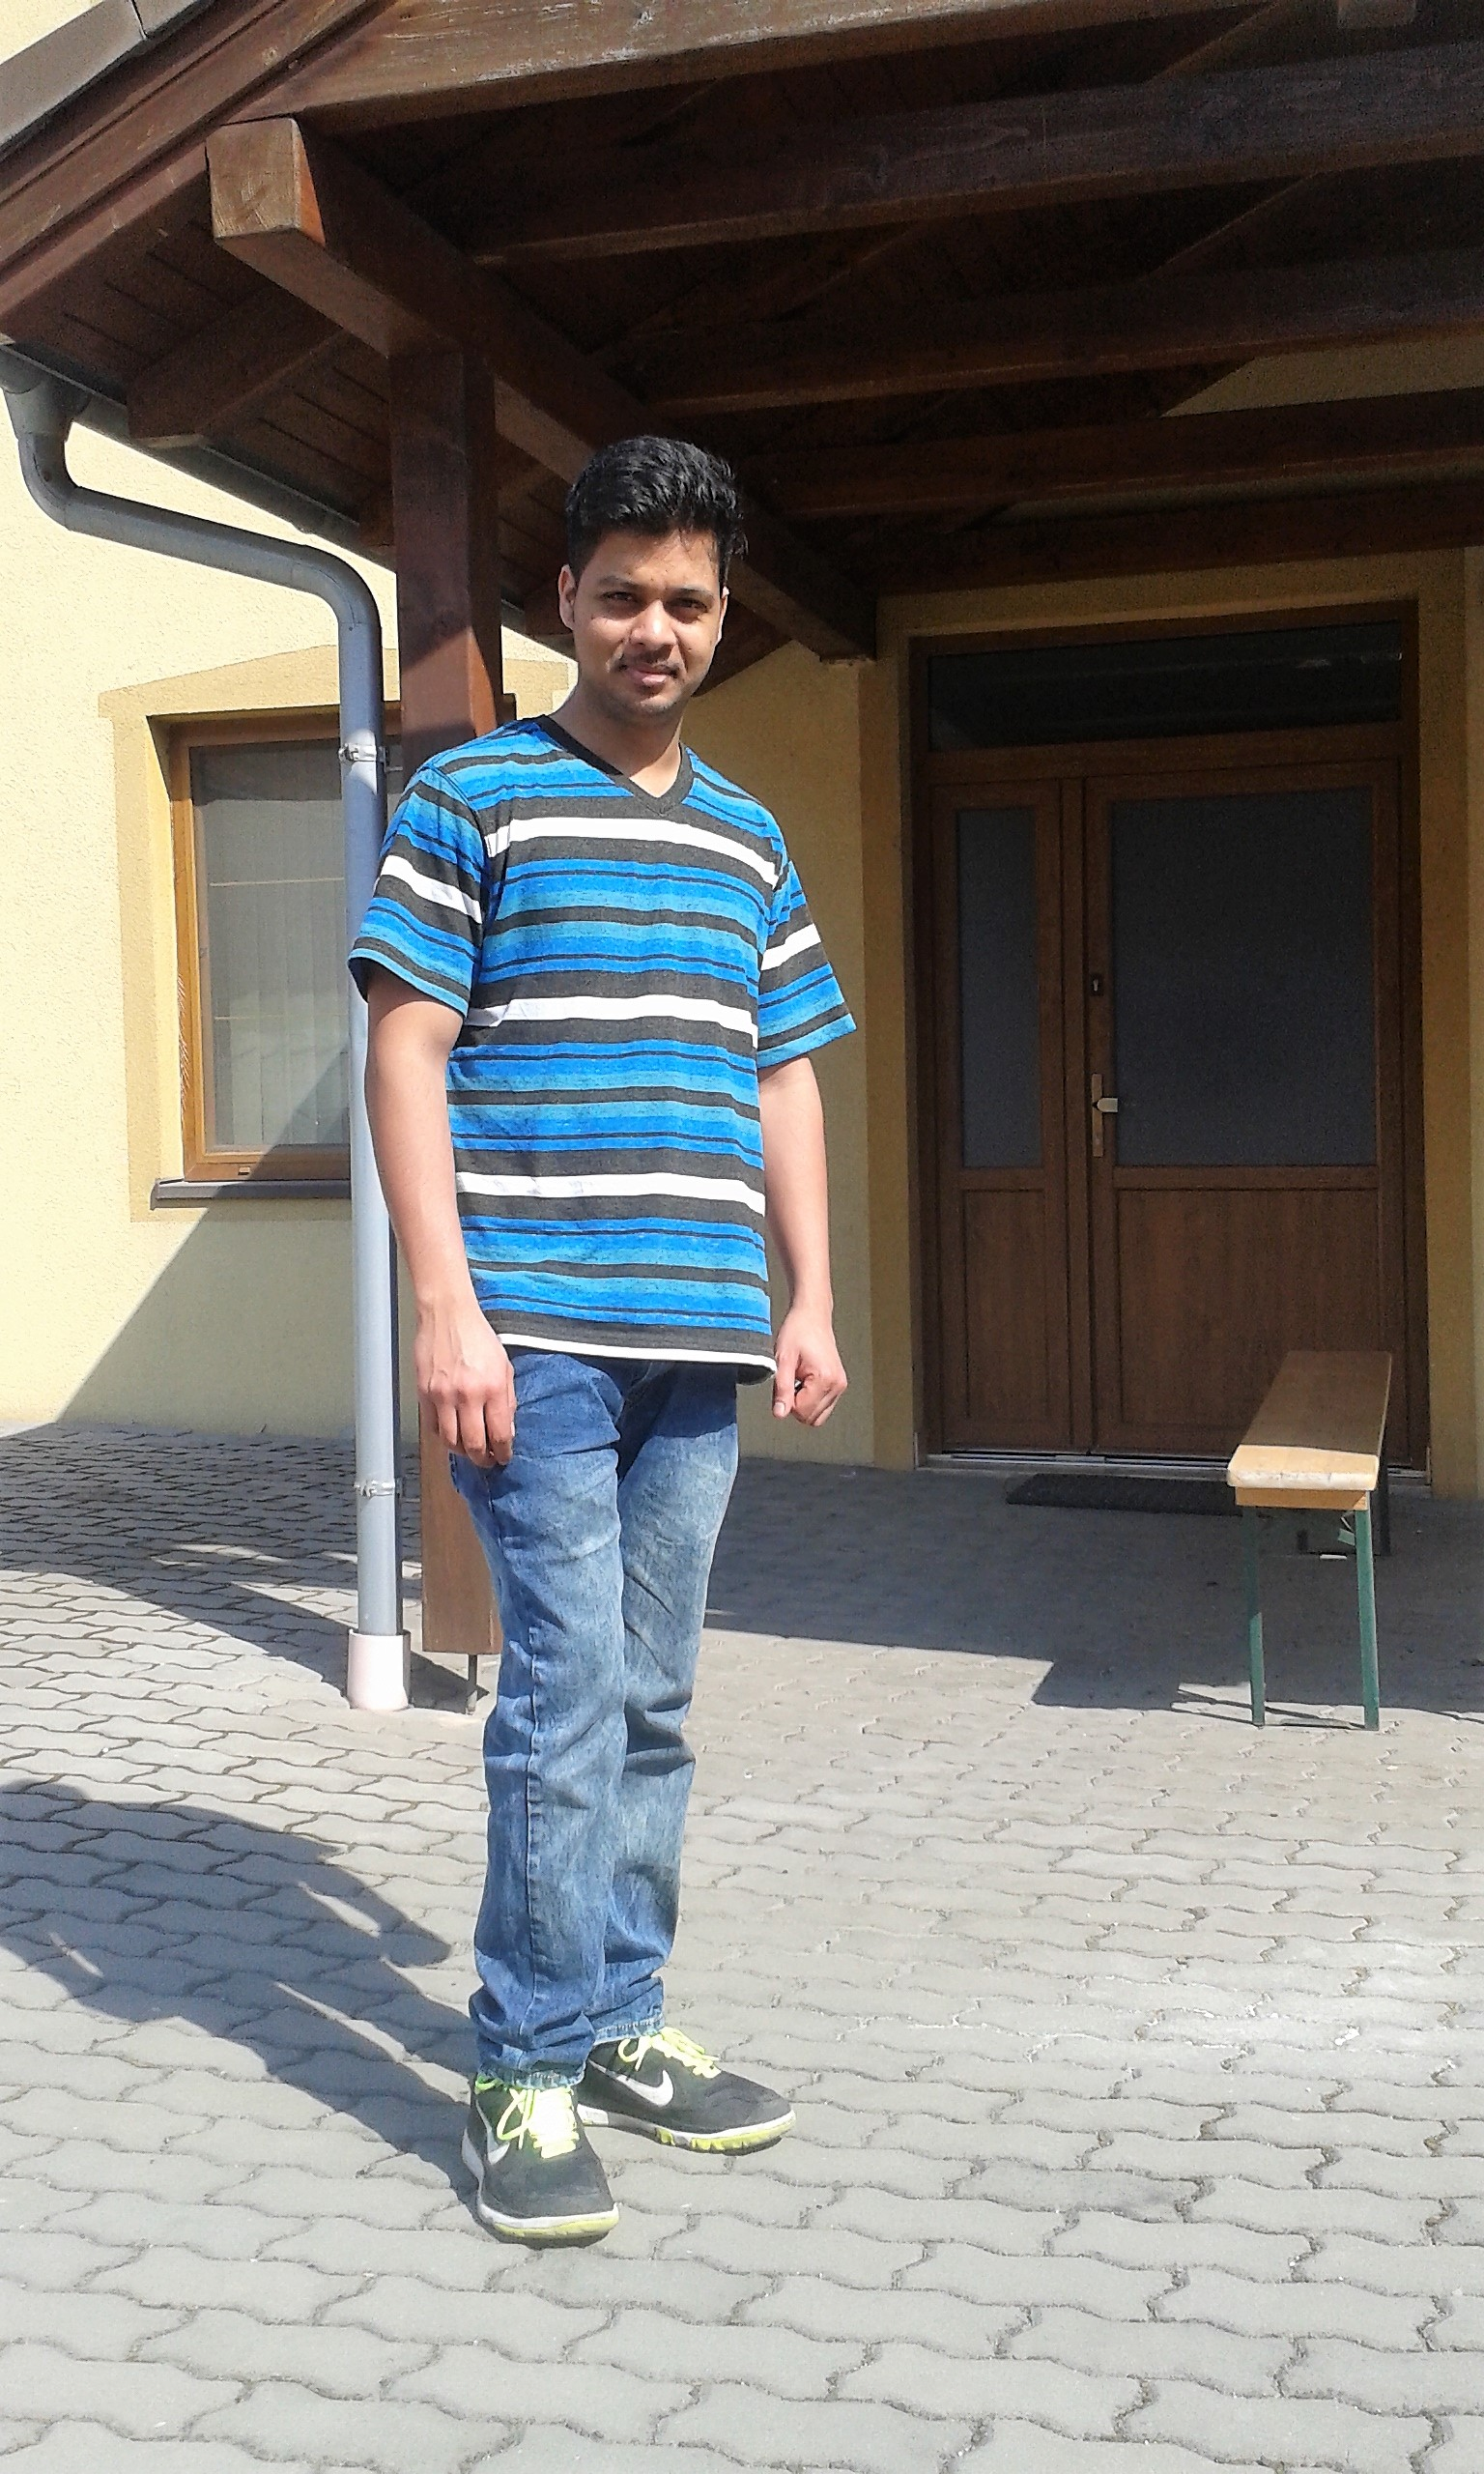 Vinay, Mechanical Engineer, Indian studying in Germany